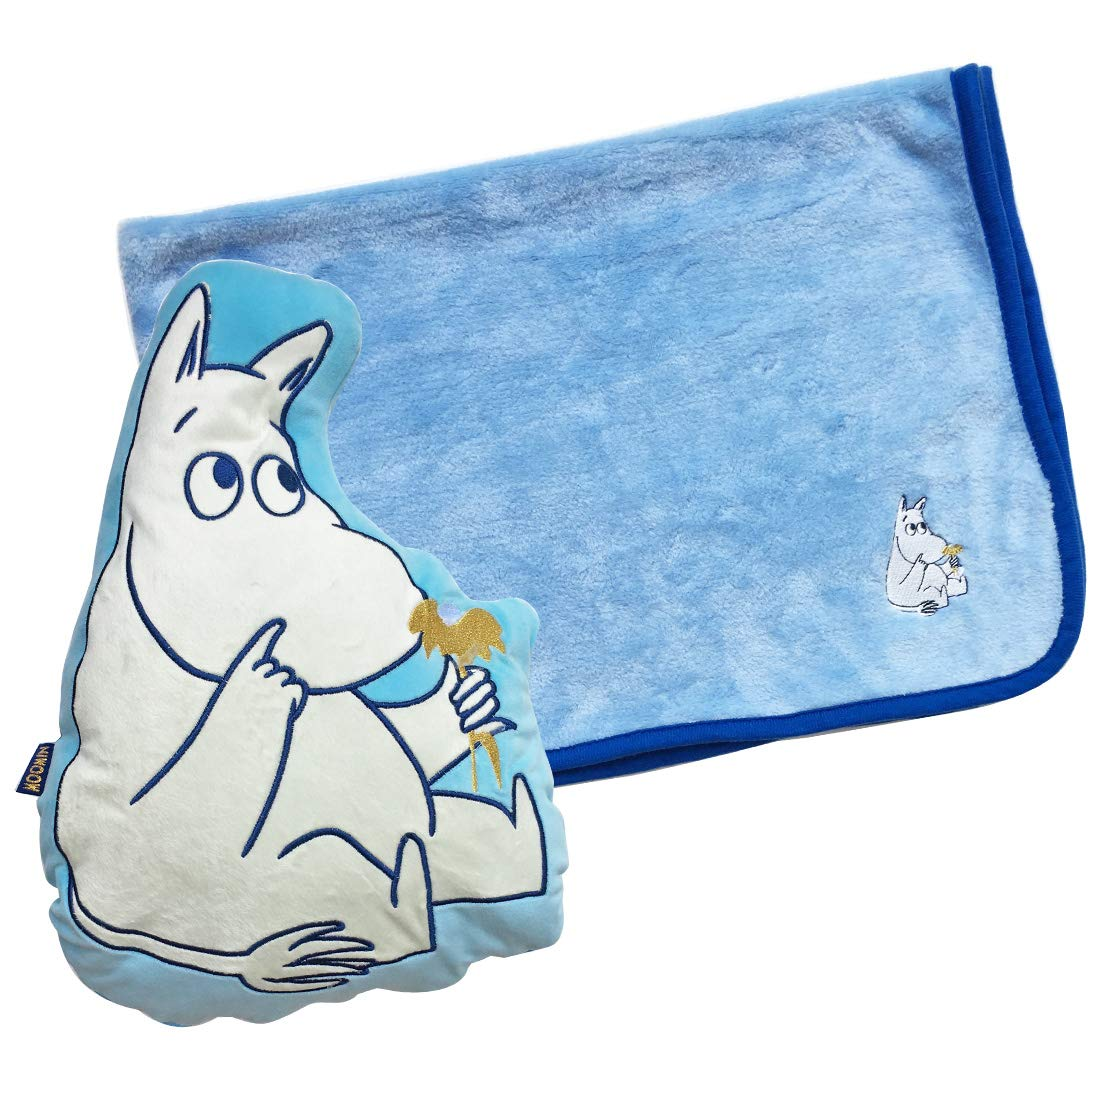 Small Planet Moomin Marshmallow Series Blanket-in Cushion Flowers MMAP3153